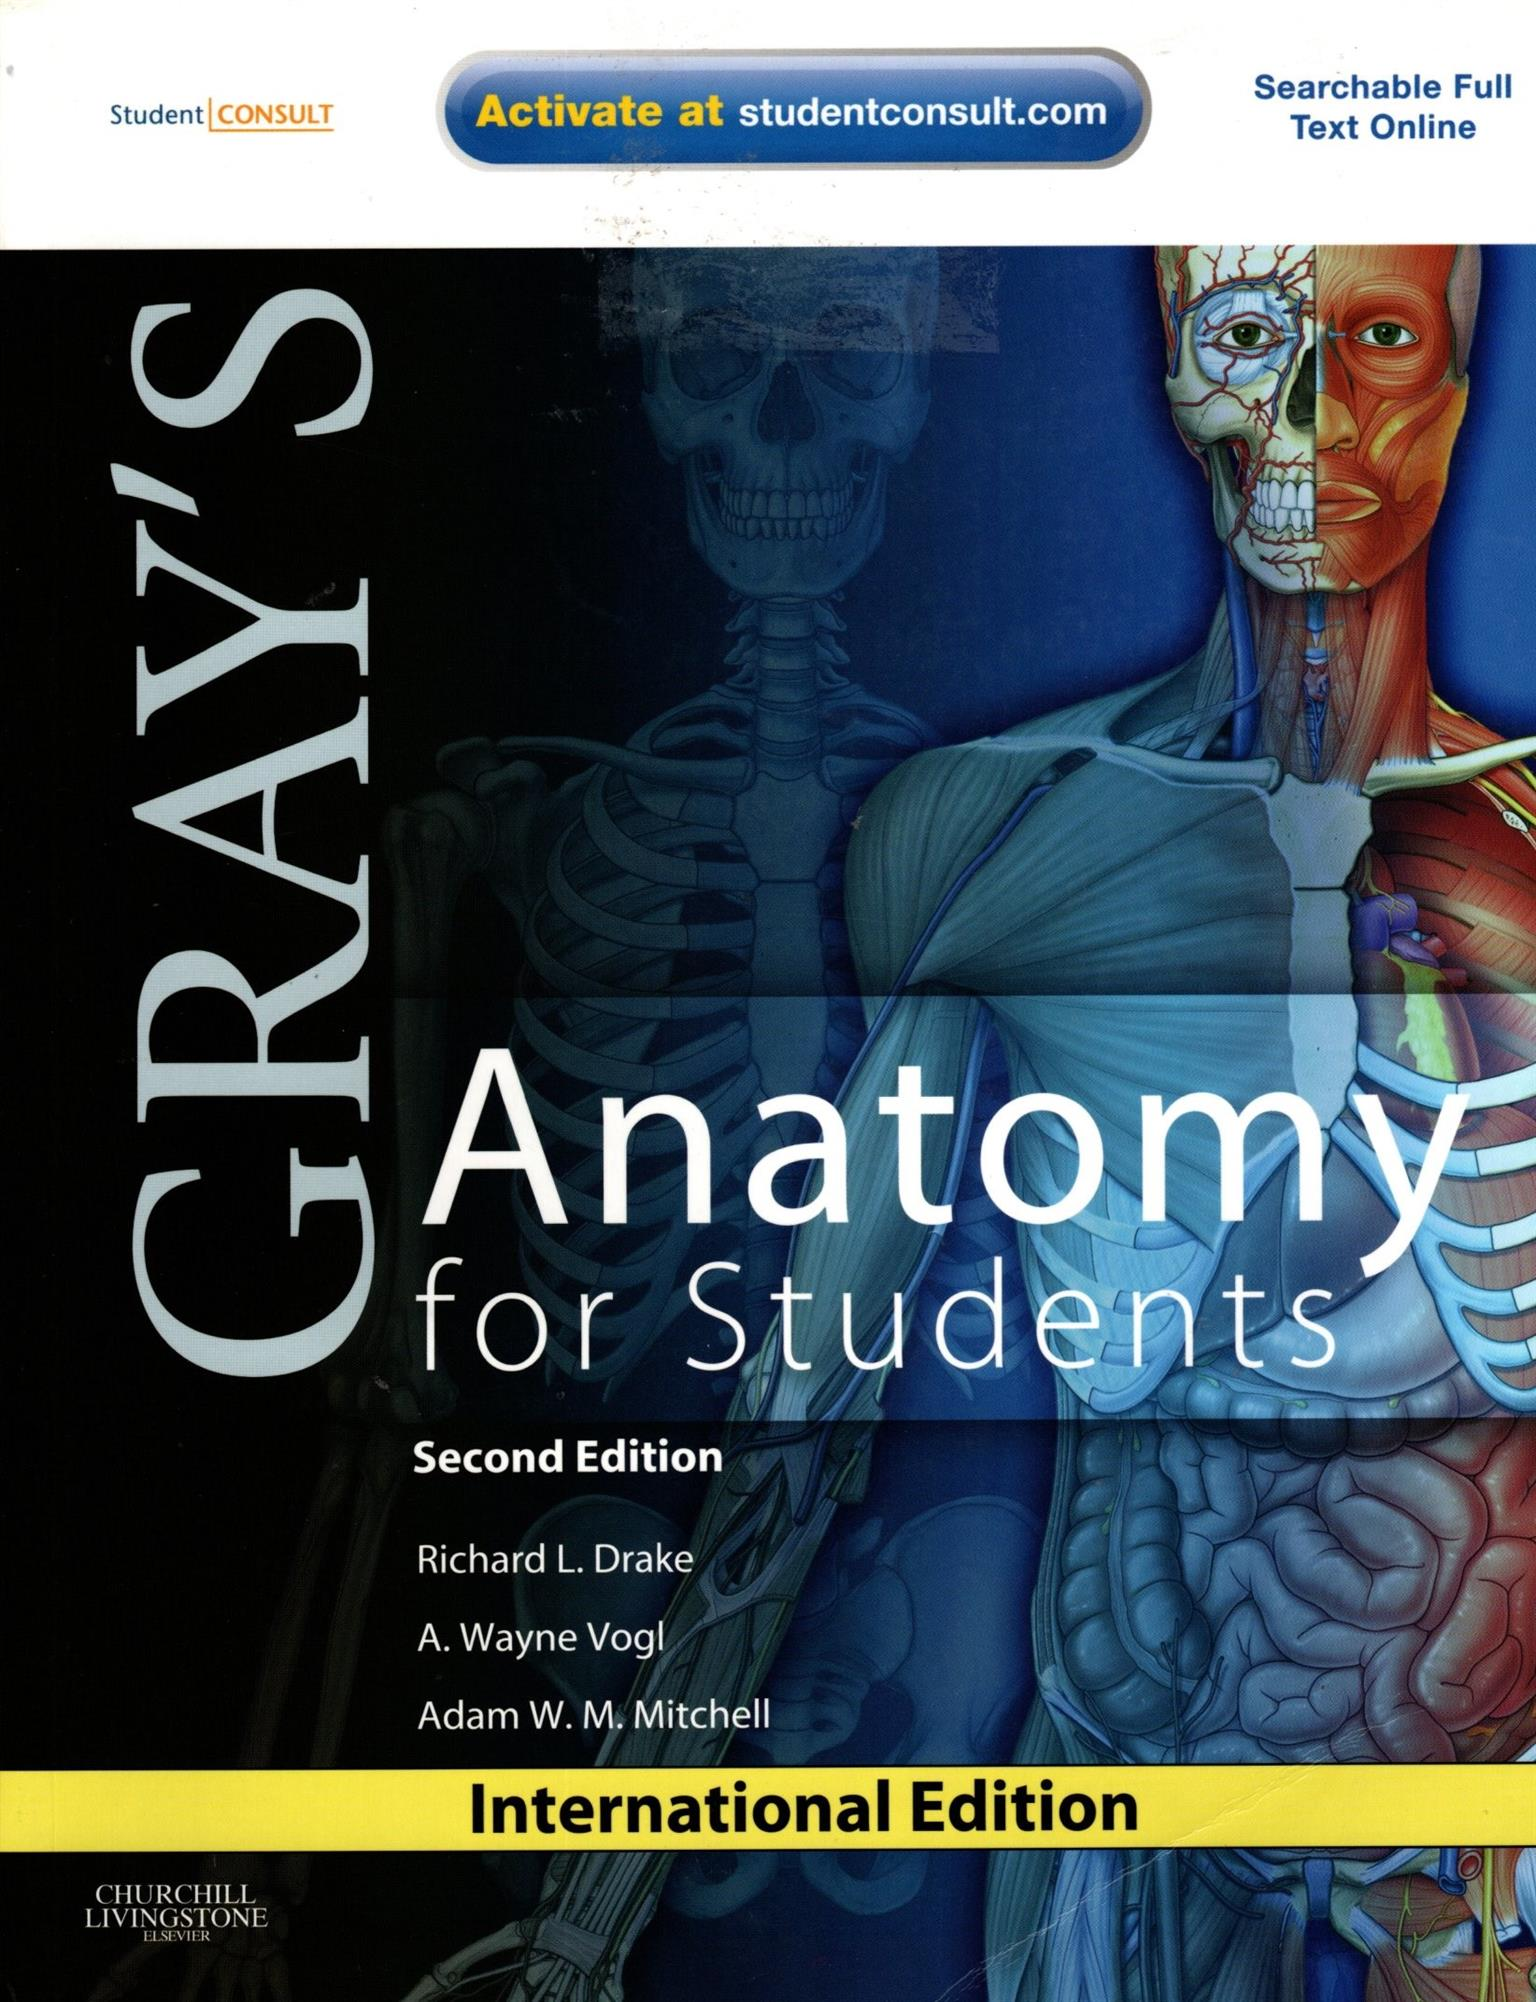 MEDICAL/HEALTH SCIENCE TEXTBOOKS FOR SALE (ADVERT 3 OF 3) - CHECK MY PROFILE FOR MORE ADS - FROM R89